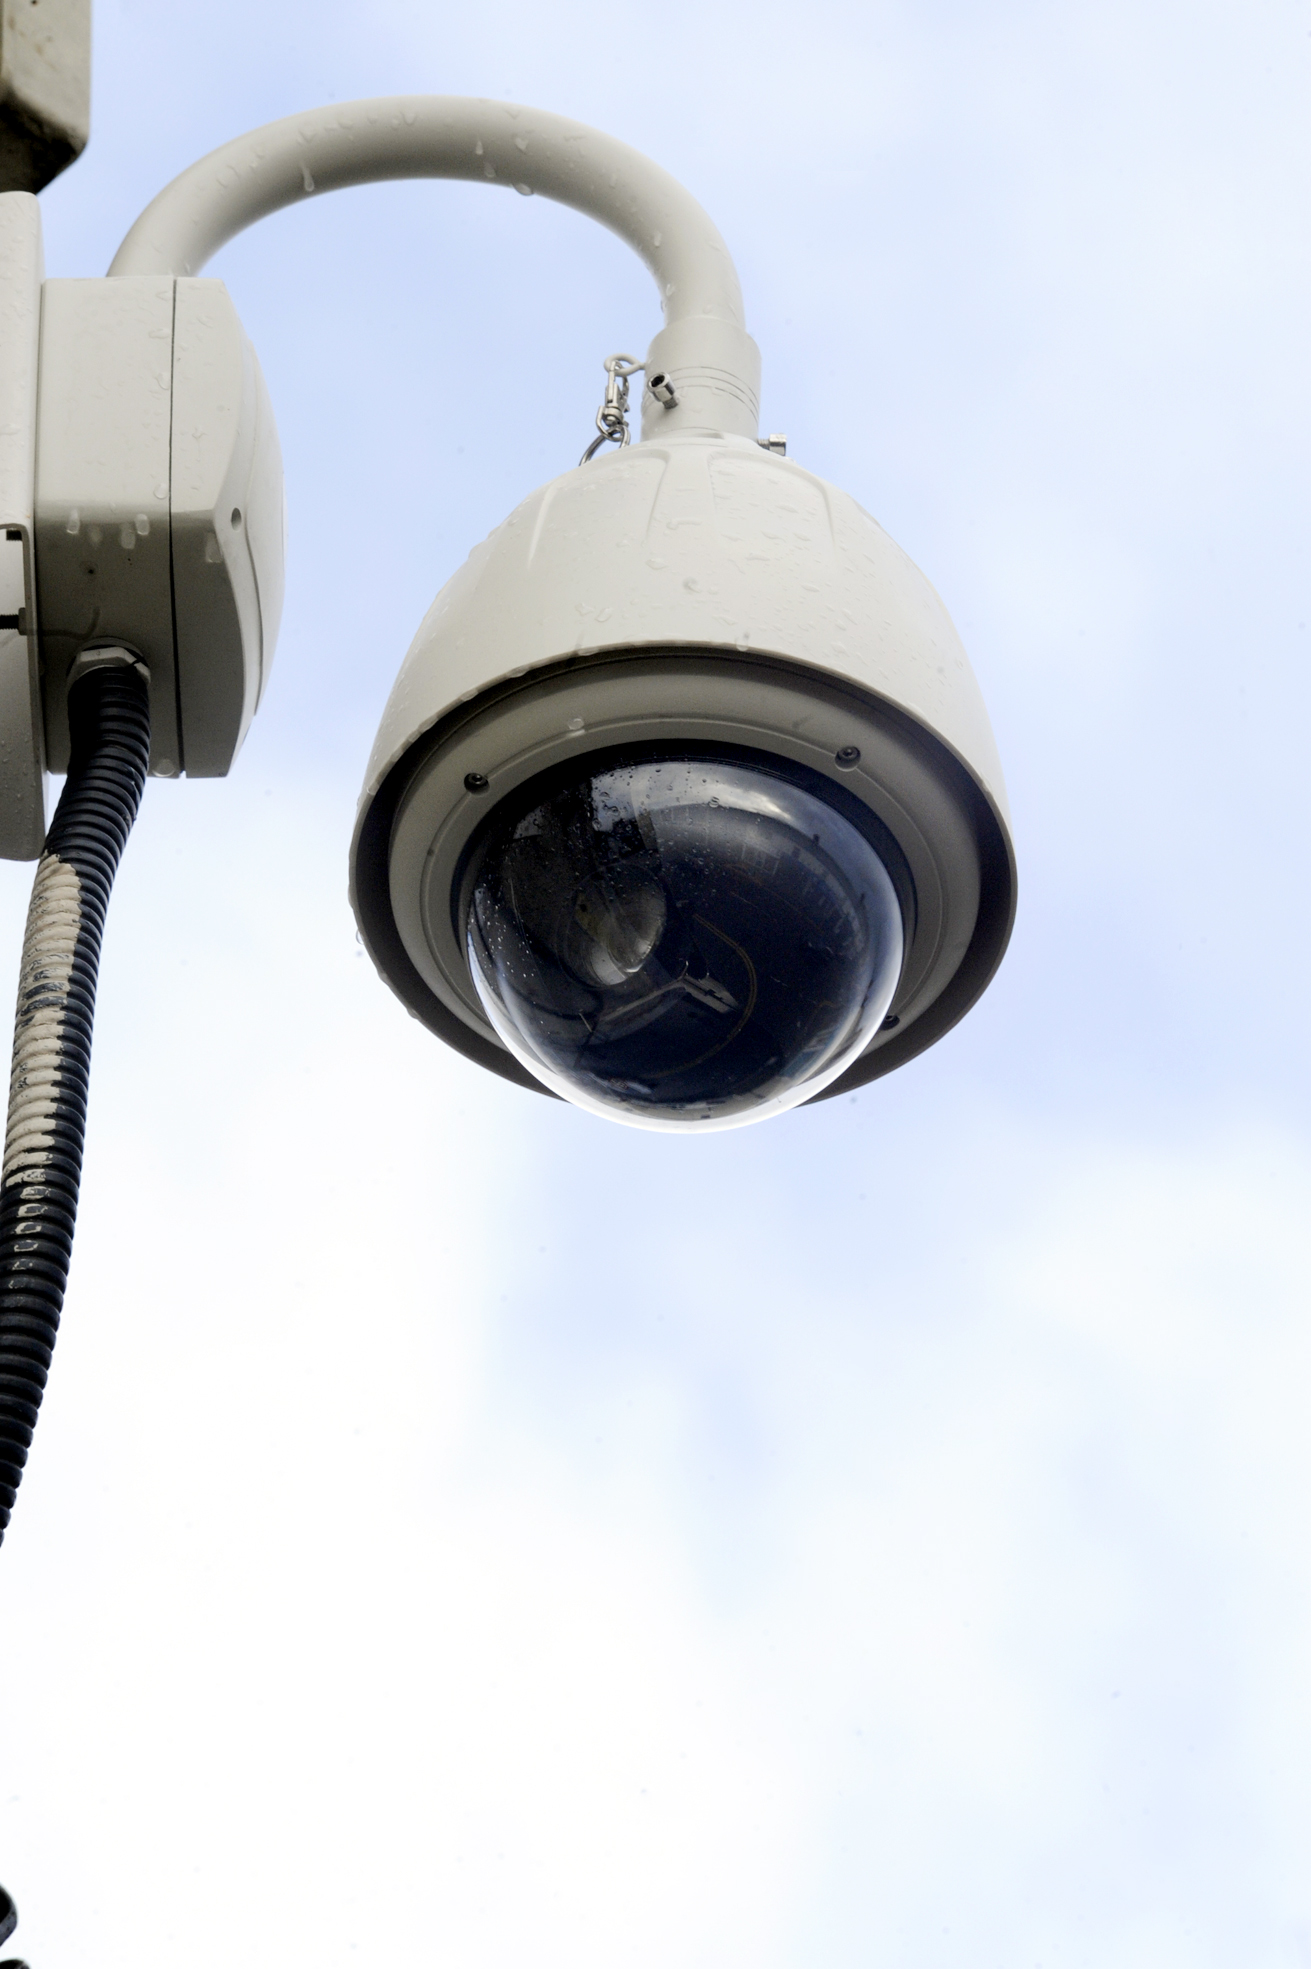 Cirencester Town Council takes on the running of the town's CCTV equipment following a £40,000 investment